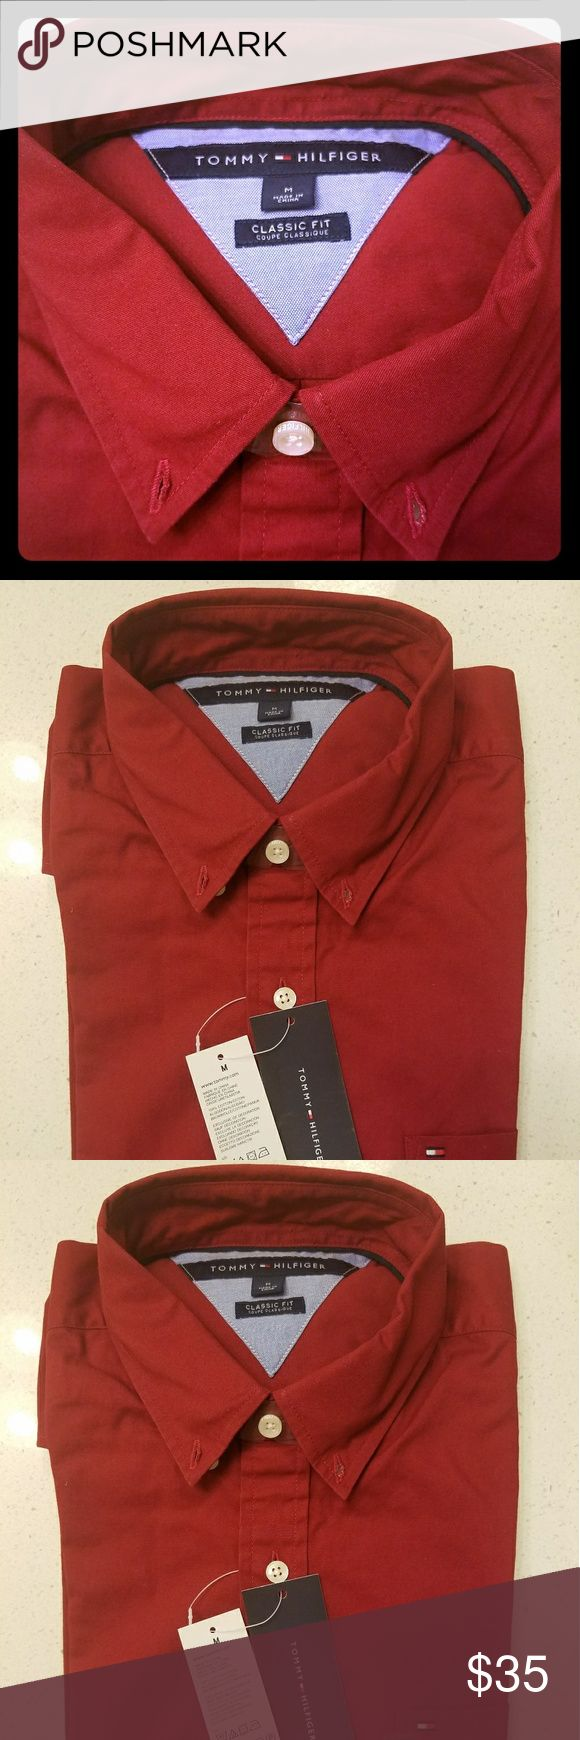 TOMMY HILFIGER mens classic fit shirt NEW New Tommy Hilfiger Shirts Dress Shirts